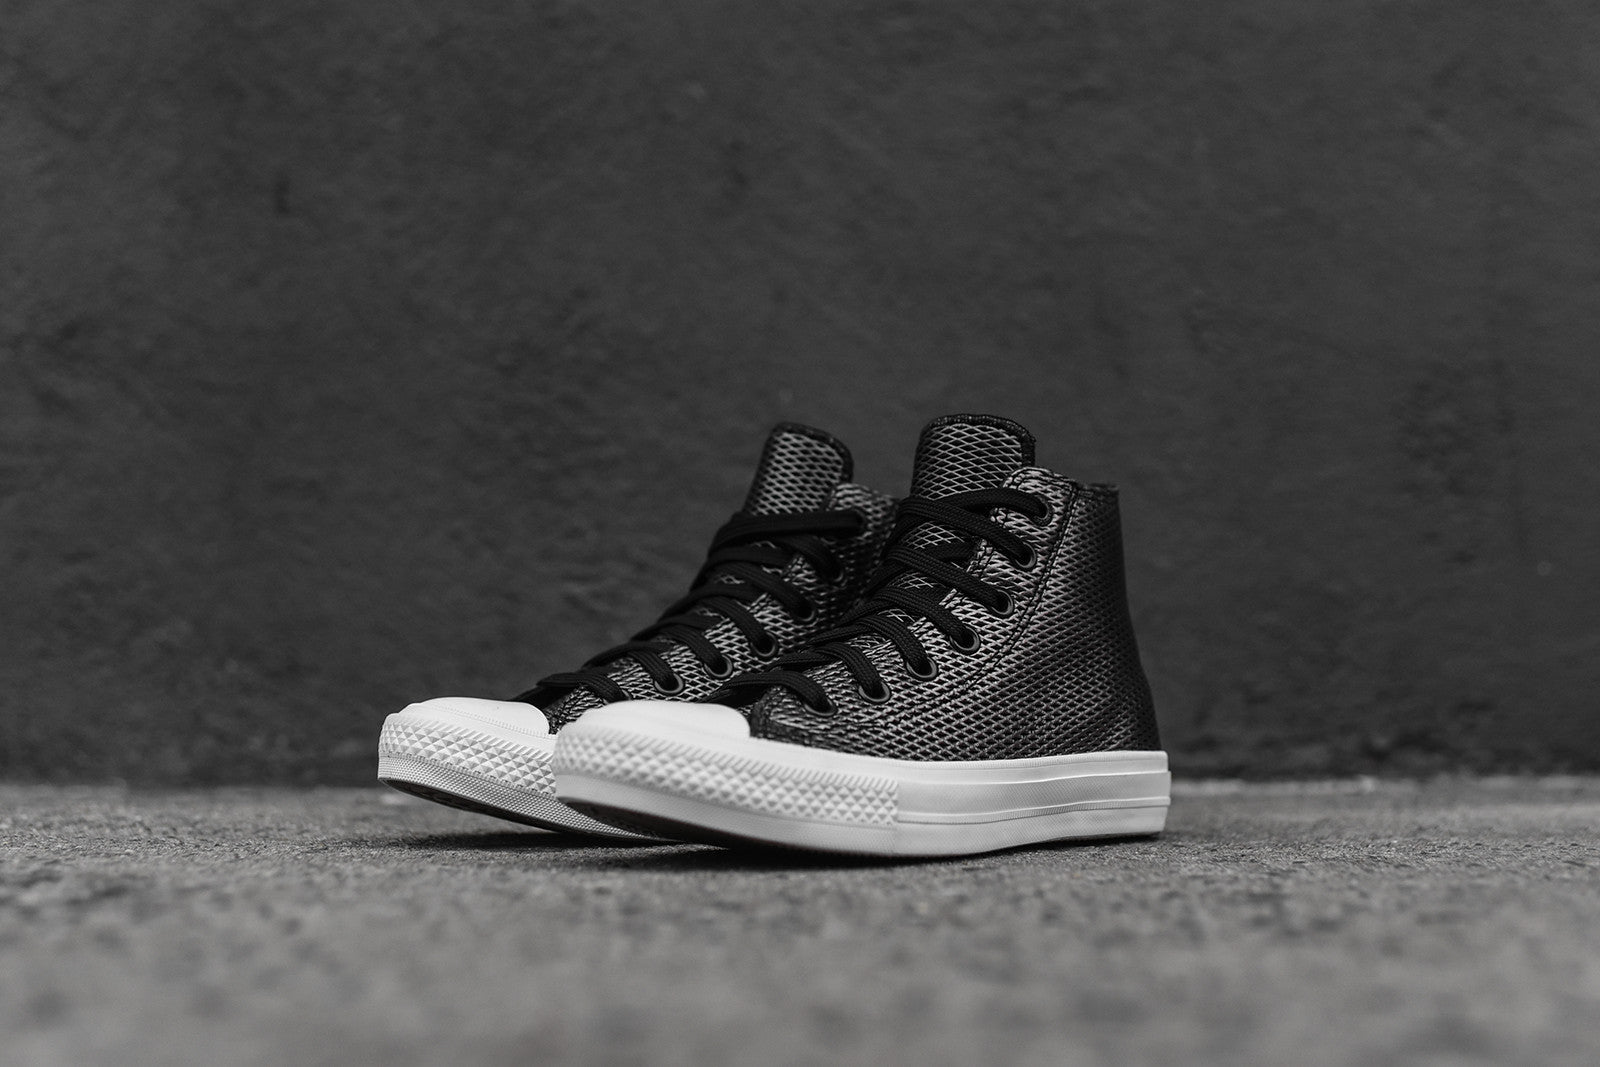 Converse WMNS Chuck II High Top - Metallic Black